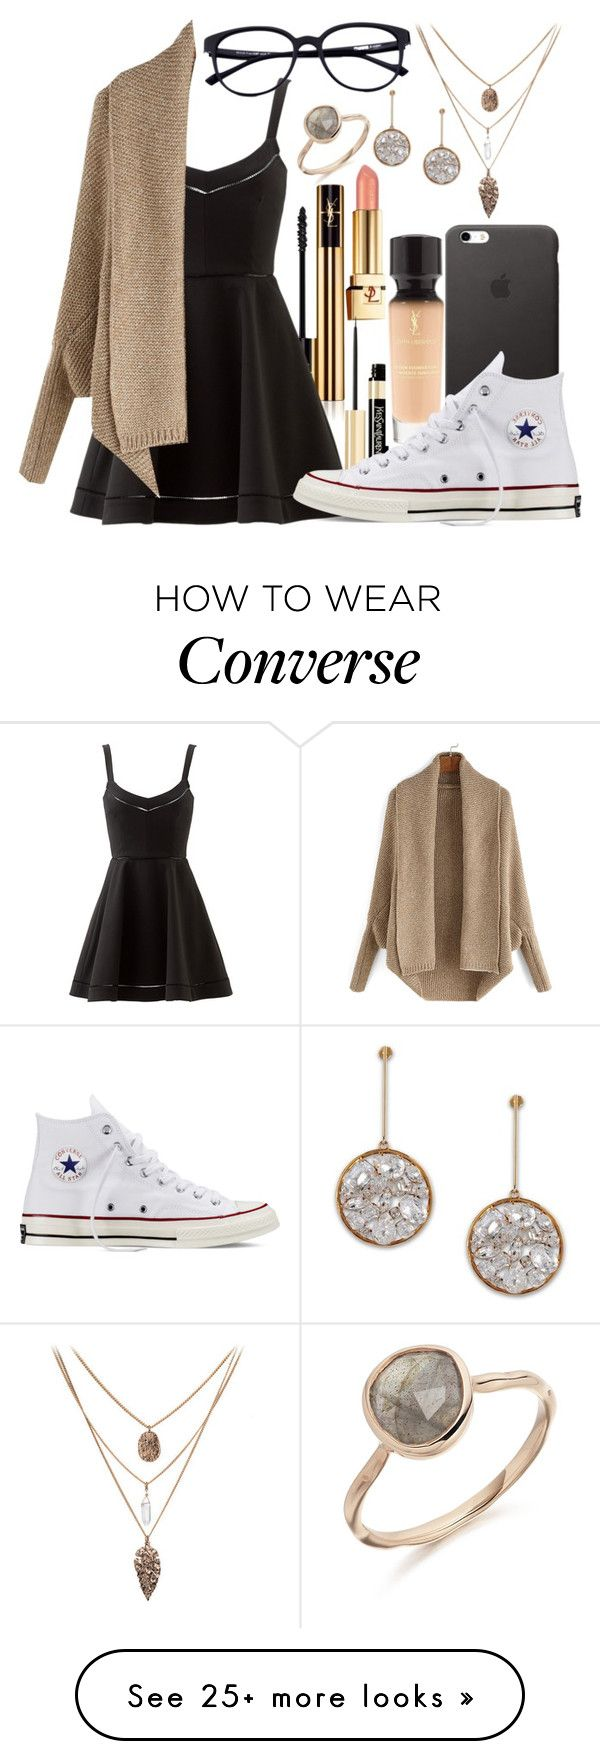 """""""She Knows..."""" by mallorimae on Polyvore featuring Yves Saint Laurent, Elizabeth and James, Converse and STELLA McCARTNEY"""